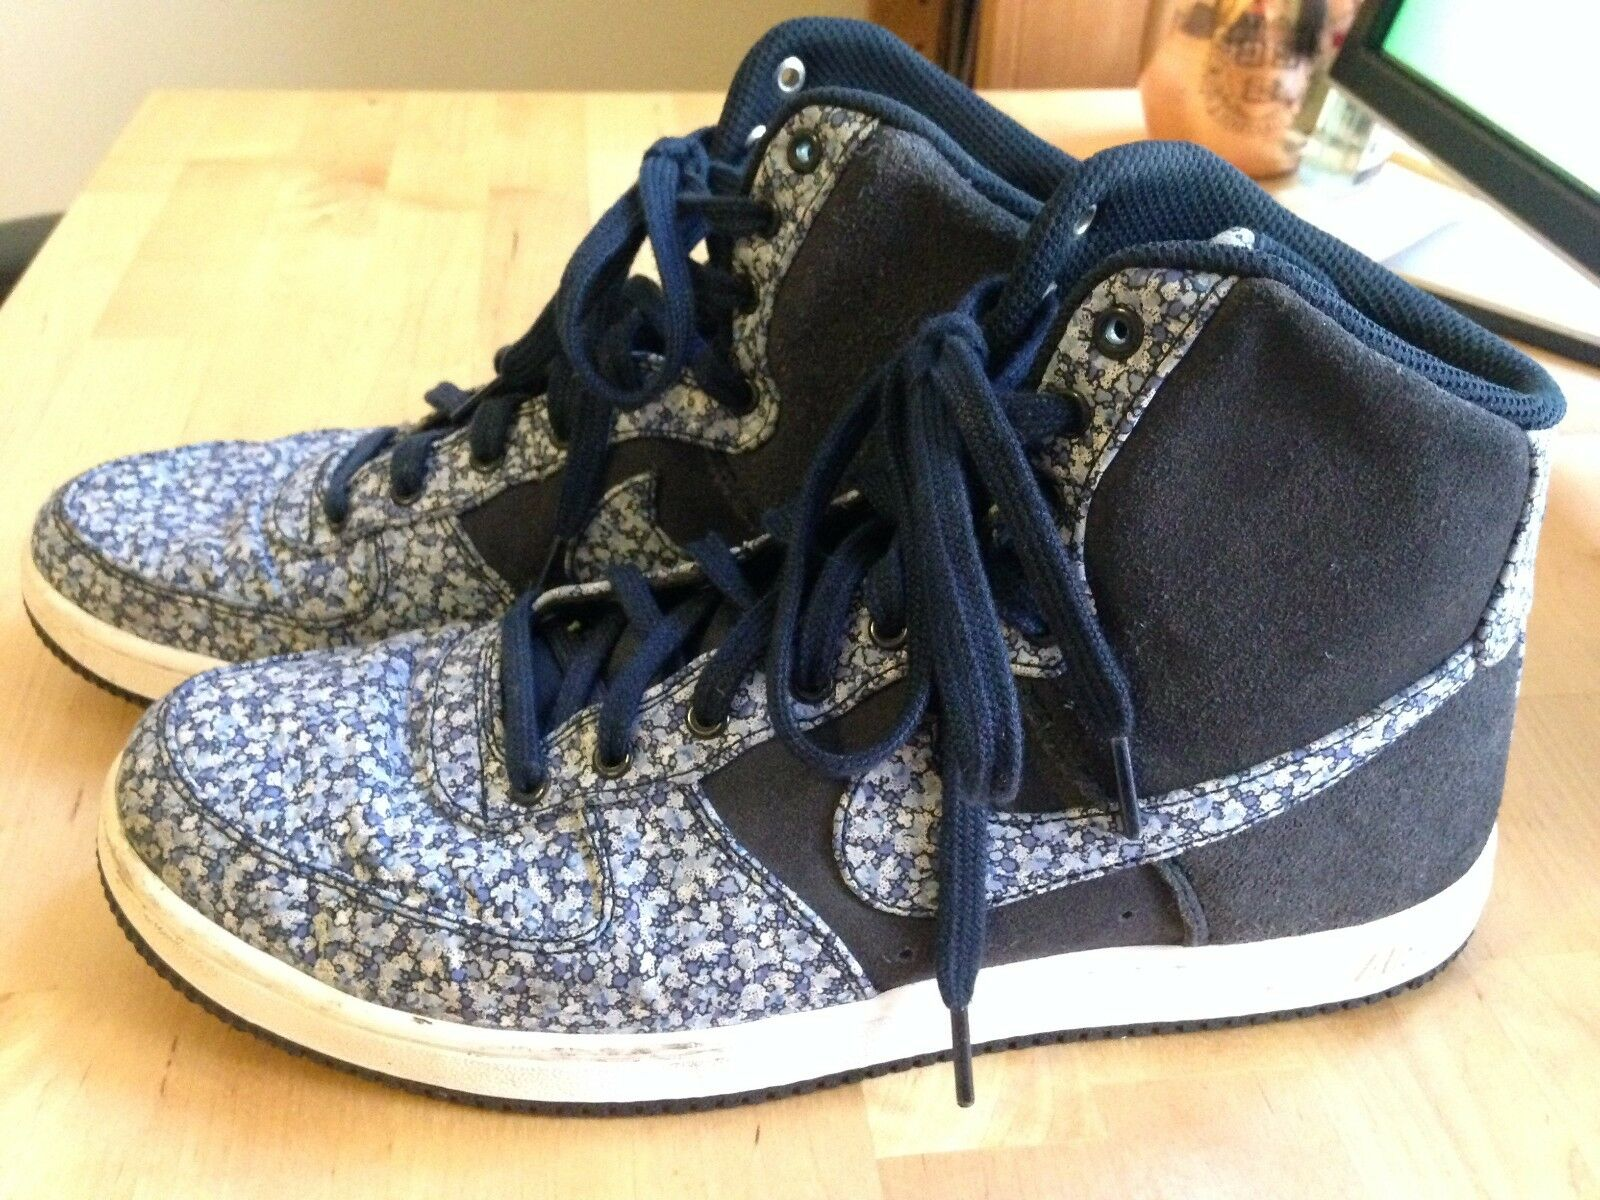 Nike Air Women's Blue Suede Patterned High Top Size 9